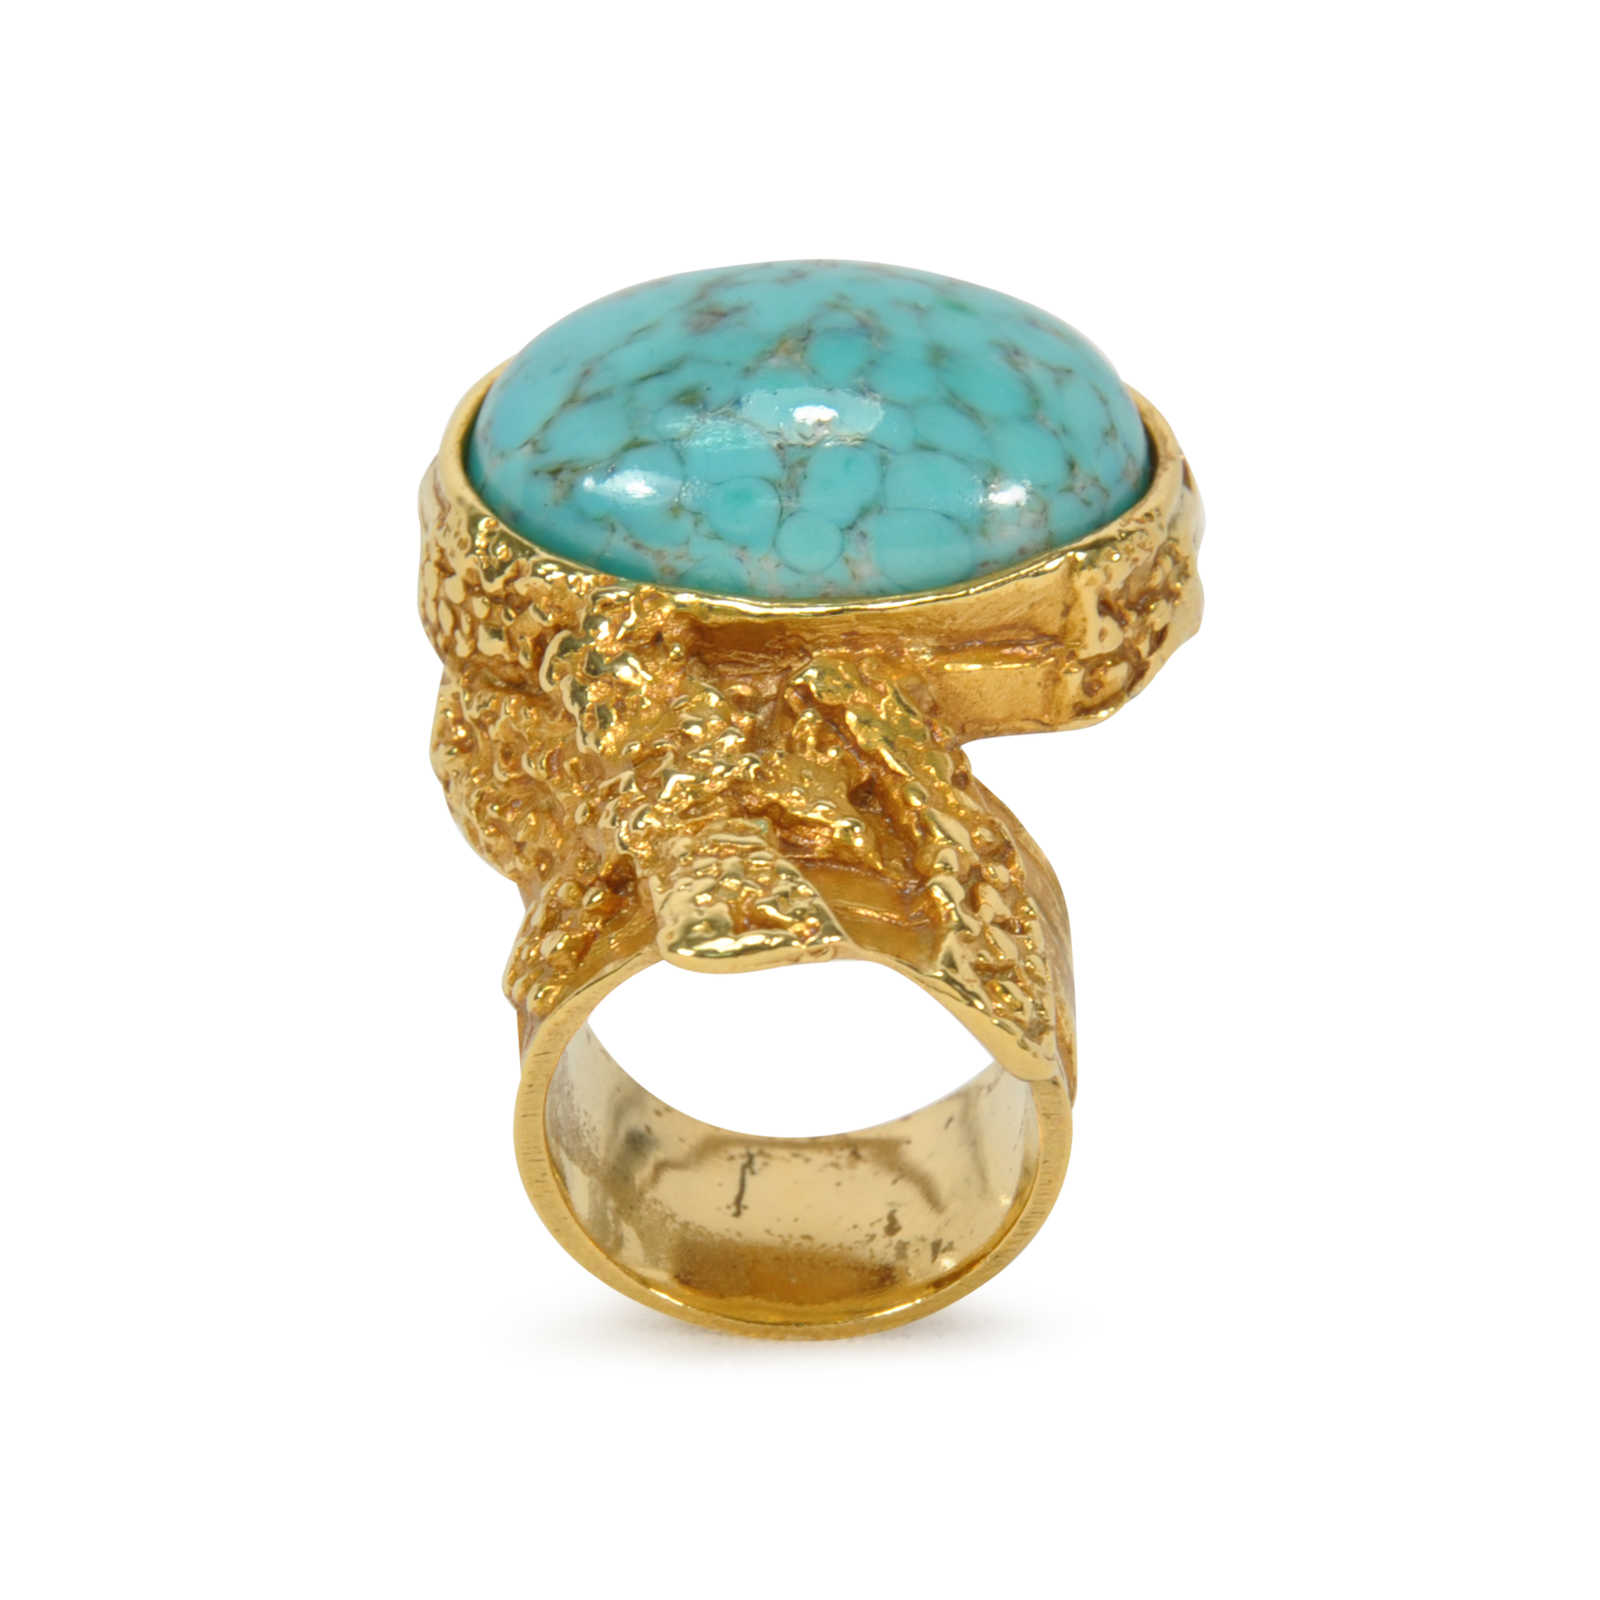 Second Hand Yves Saint Laurent Arty Oval Ring Pss 260 ...